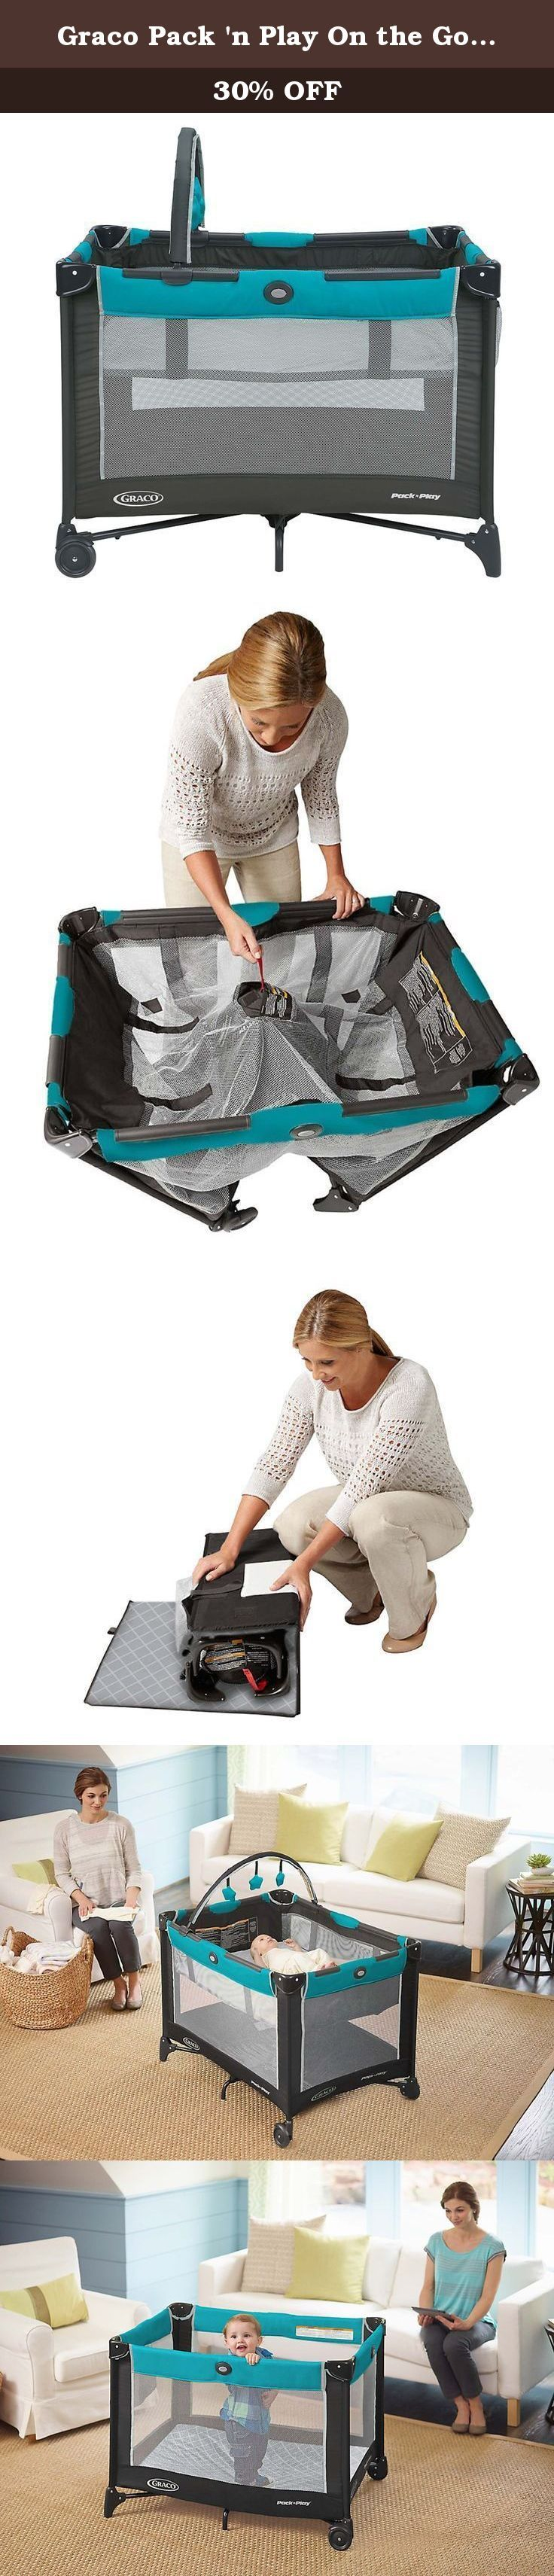 Graco Pack 'n Play On the Go Playard, Finch. You want your little one to be comfortable no matter where you go and we want to make that easier for you with a specially-made bassinet that means less parts to carry and its 20% more compact fold, there's no more convenient solution than our Pack 'n Play On The Go. Its durable frame makes it perfectly suited for travel and the signature Graco push-button fold allows you to break it down quickly & hassle-free. At home or away, baby will be…